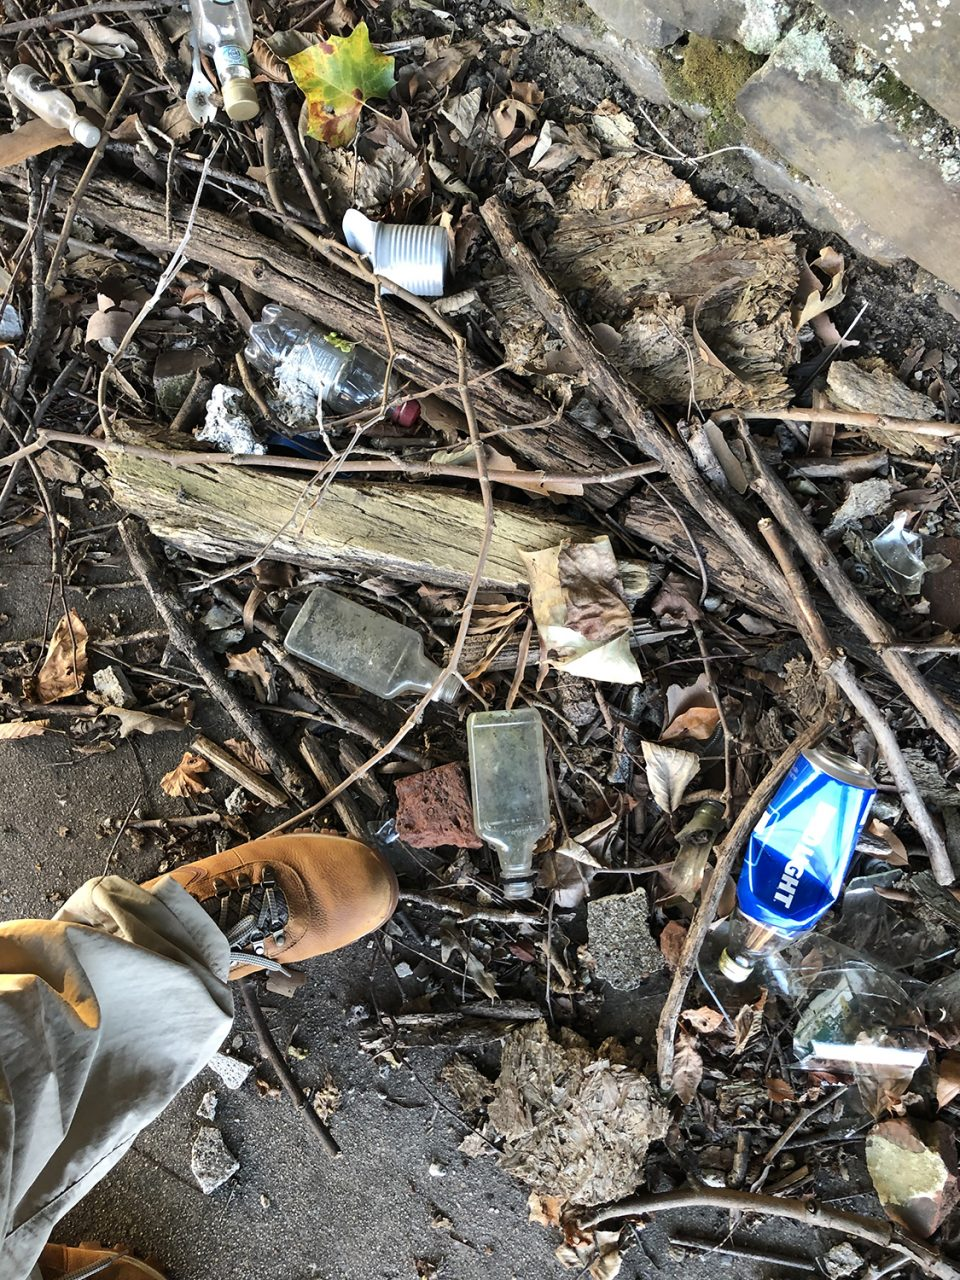 That's my foot on the sidewalk near an abandoned mill building in Virginia, surrounded by discarded liquor bottles and detritus.